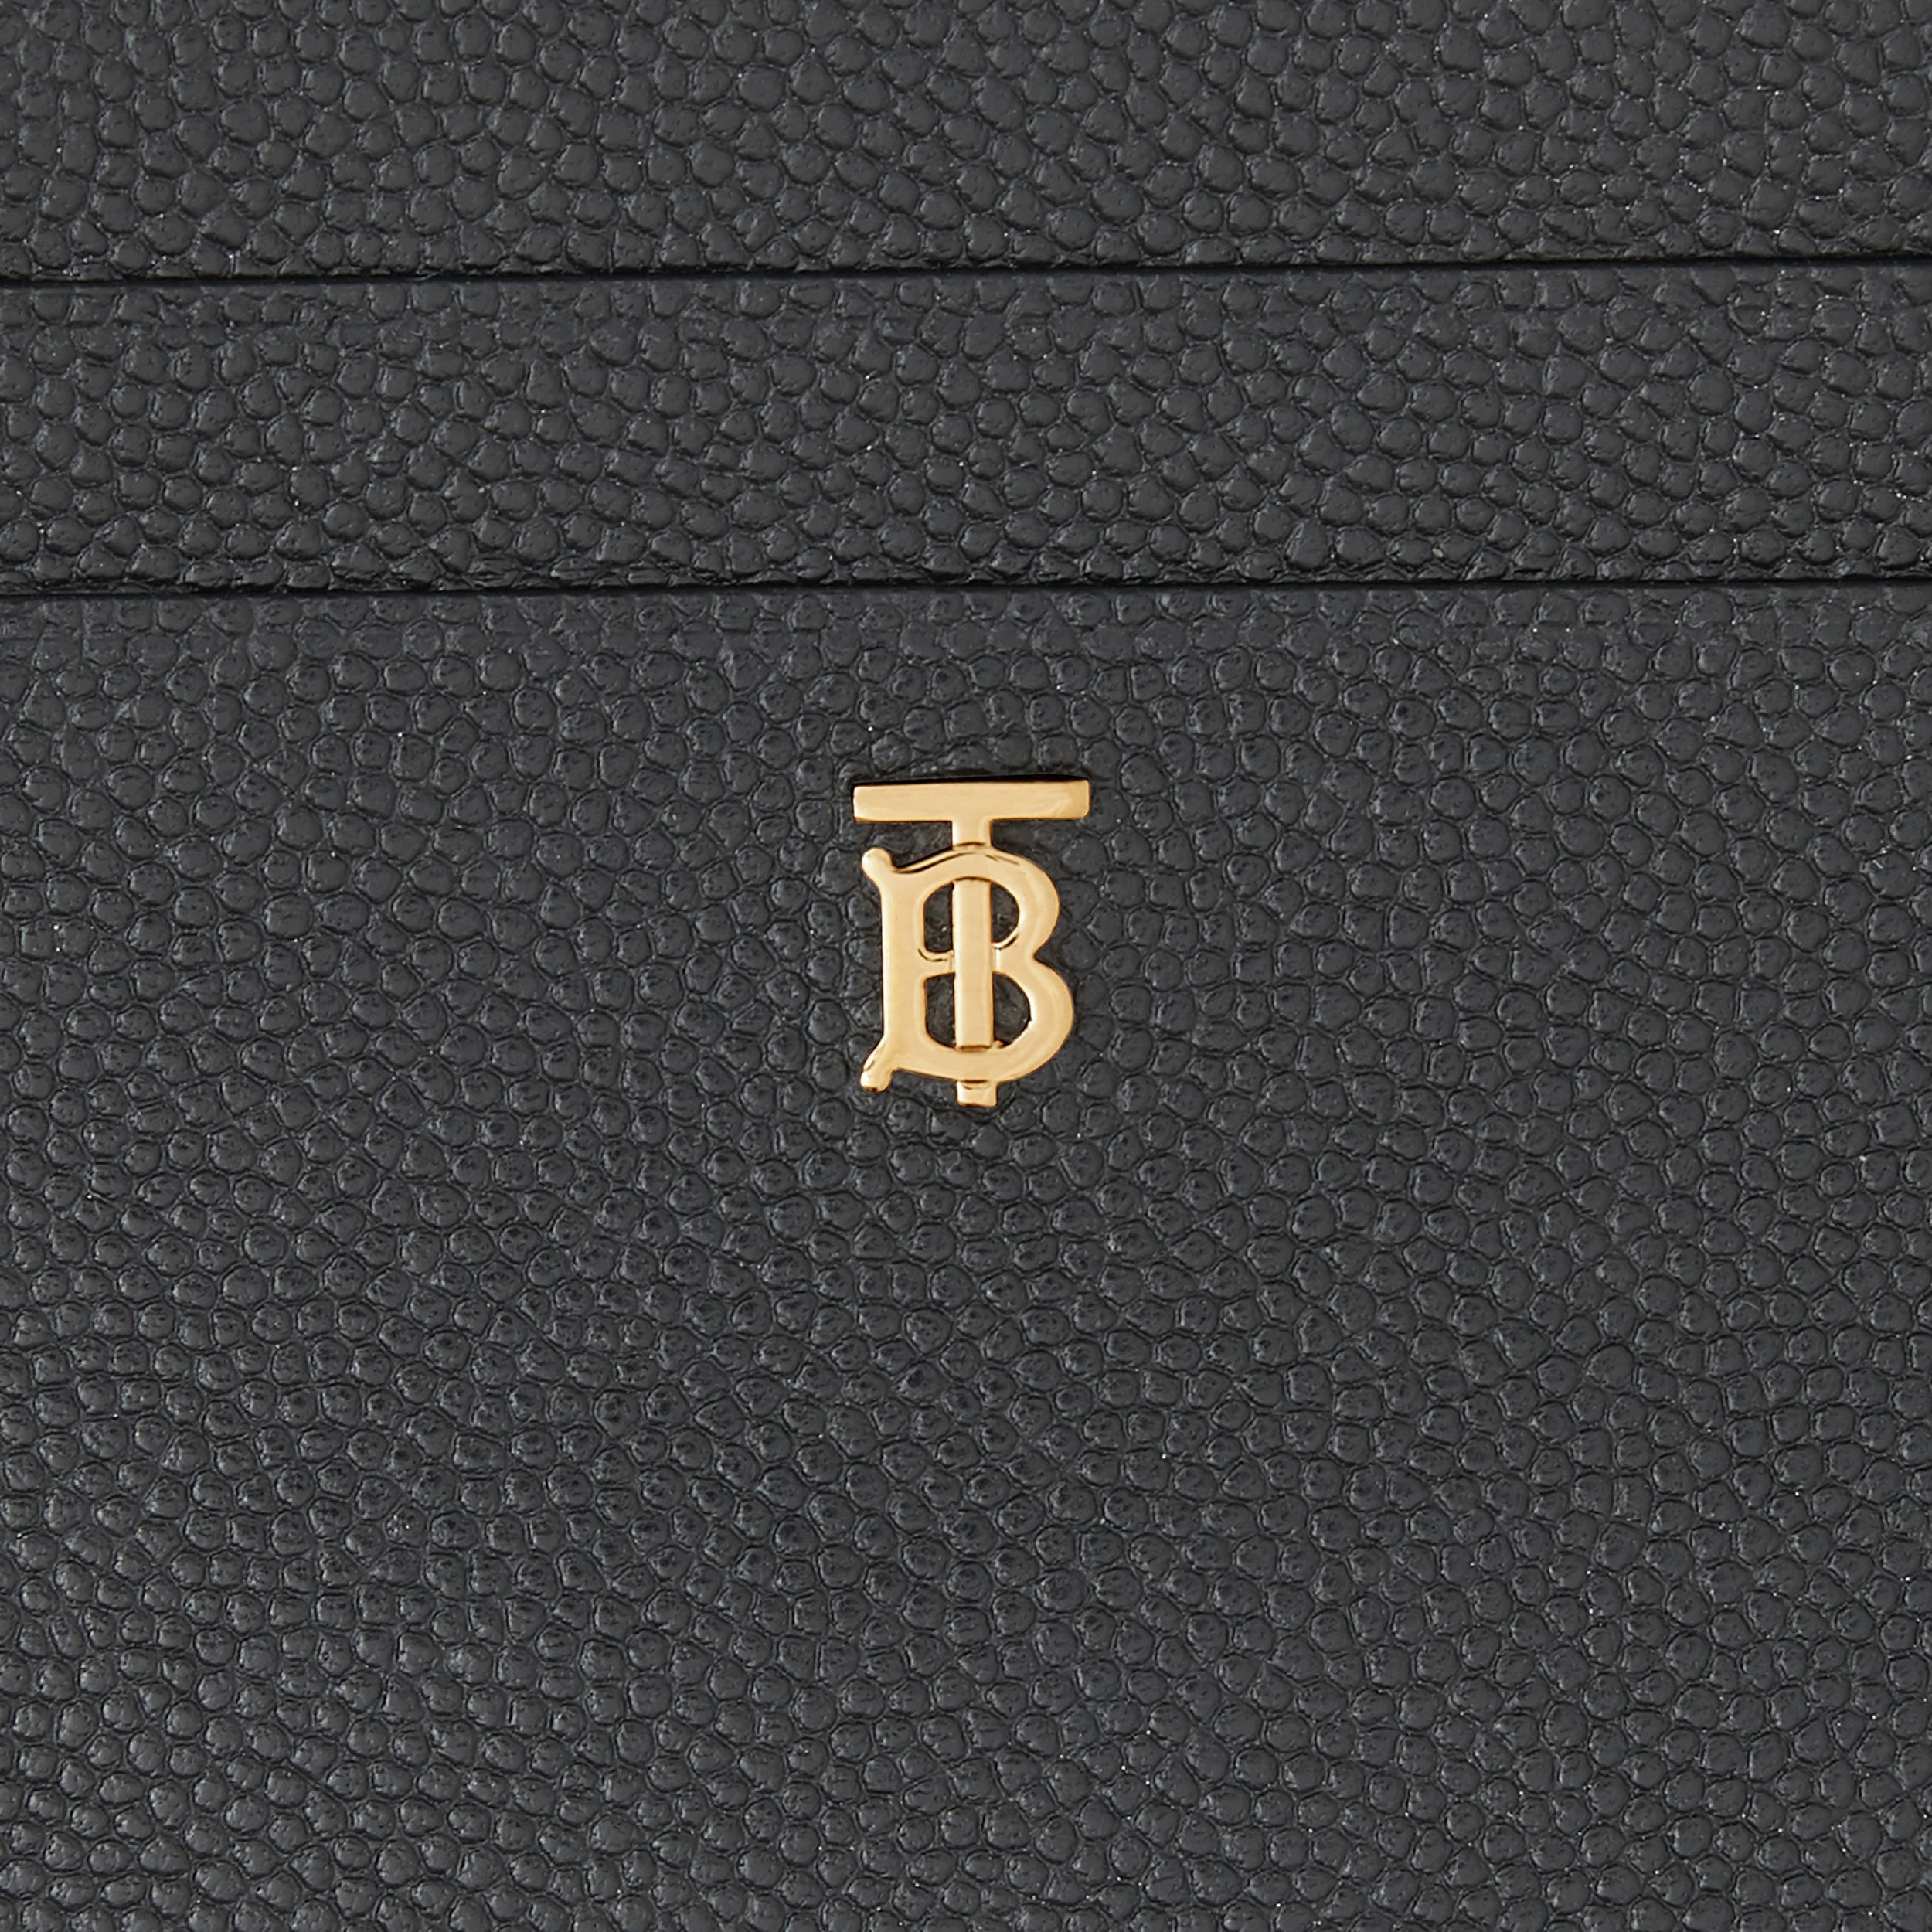 Monogram Motif Grainy Leather Zip Card Case in Black - Women | Burberry - 2